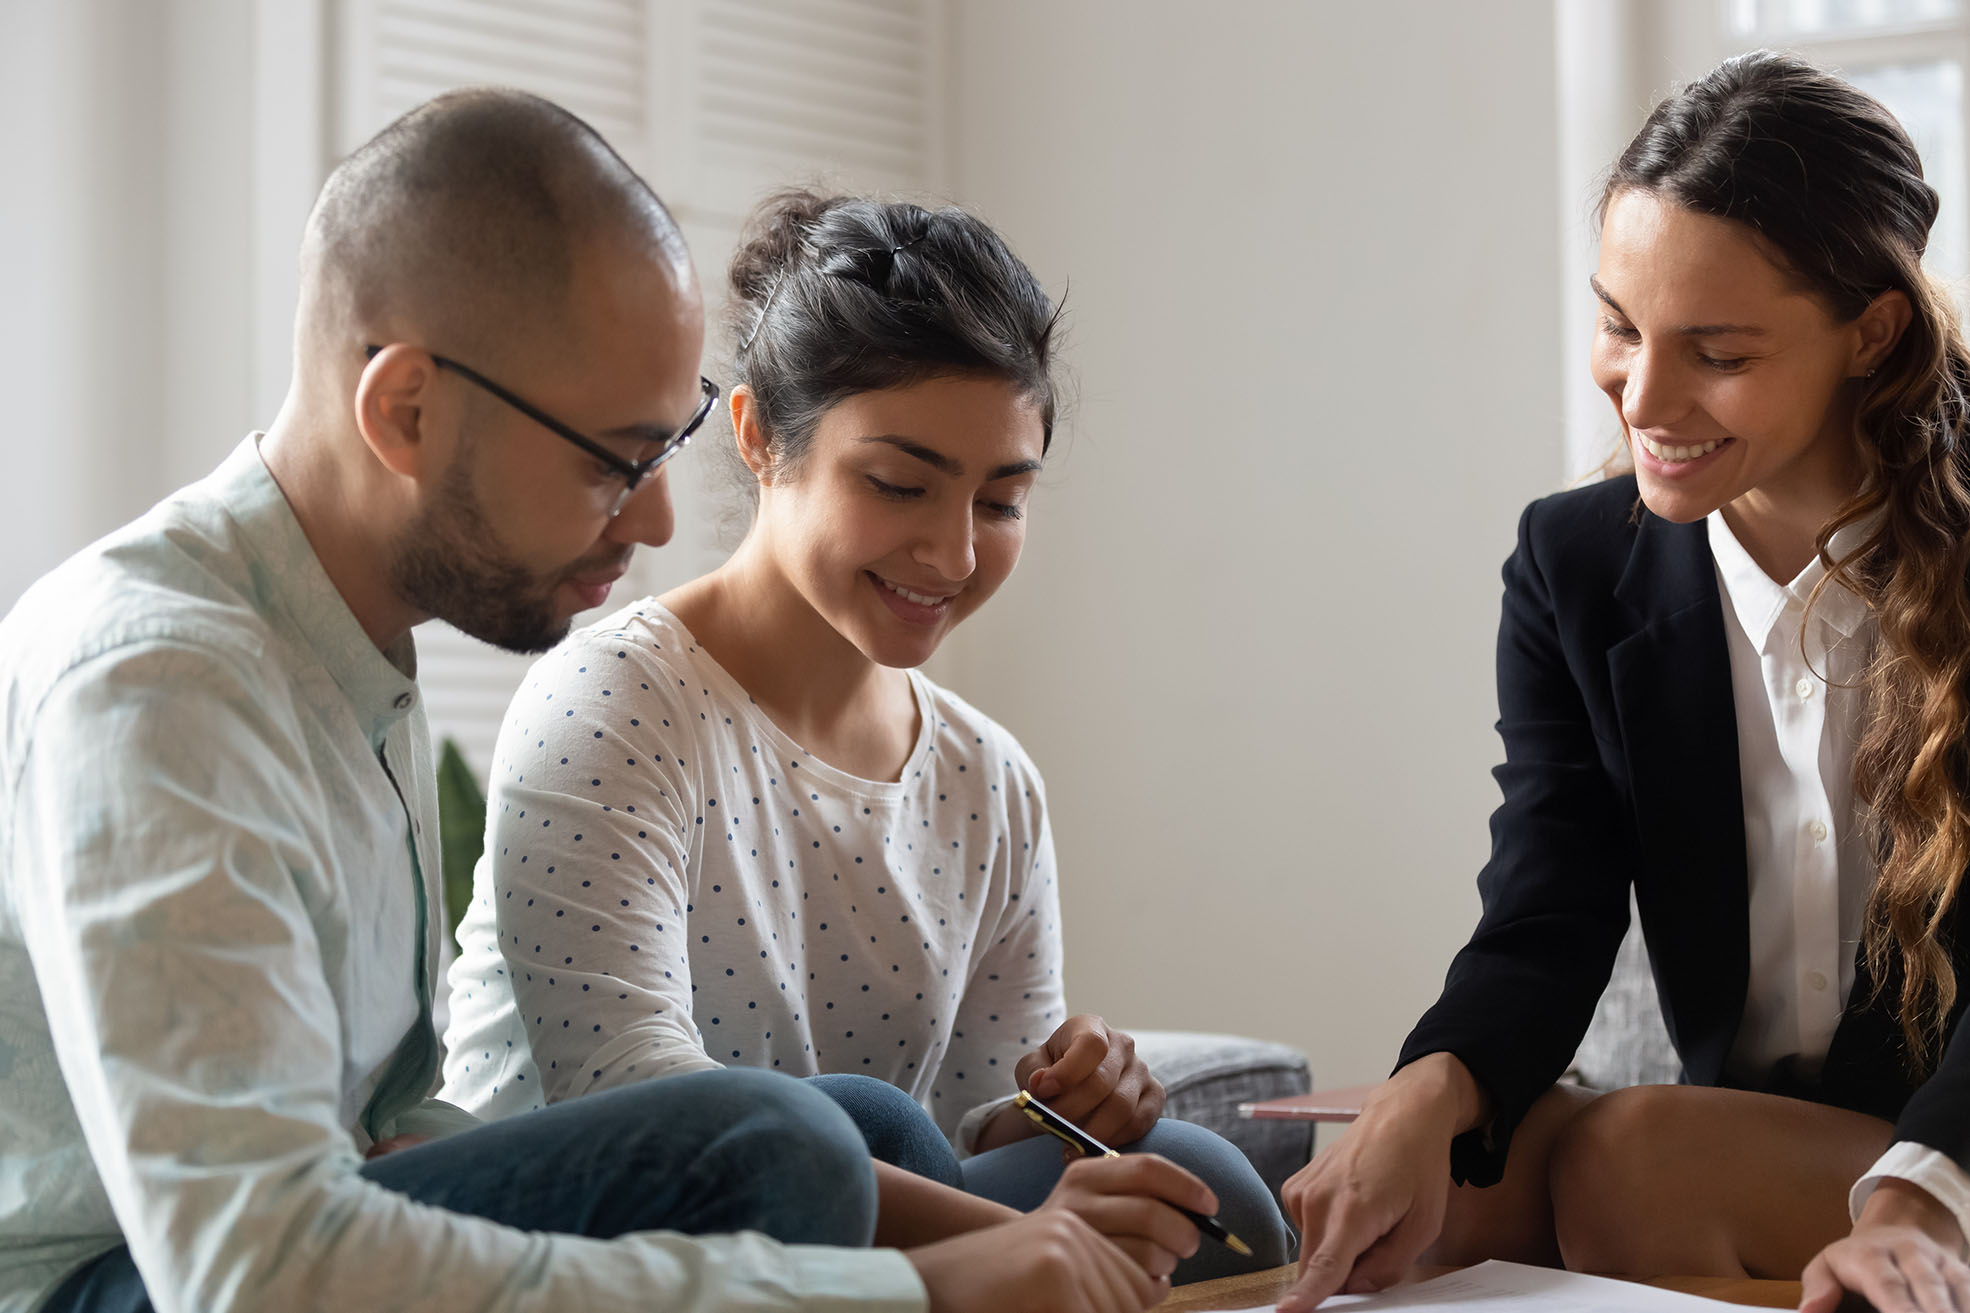 Transparency in Lending: 8 Ways to Build Trust With Borrowers